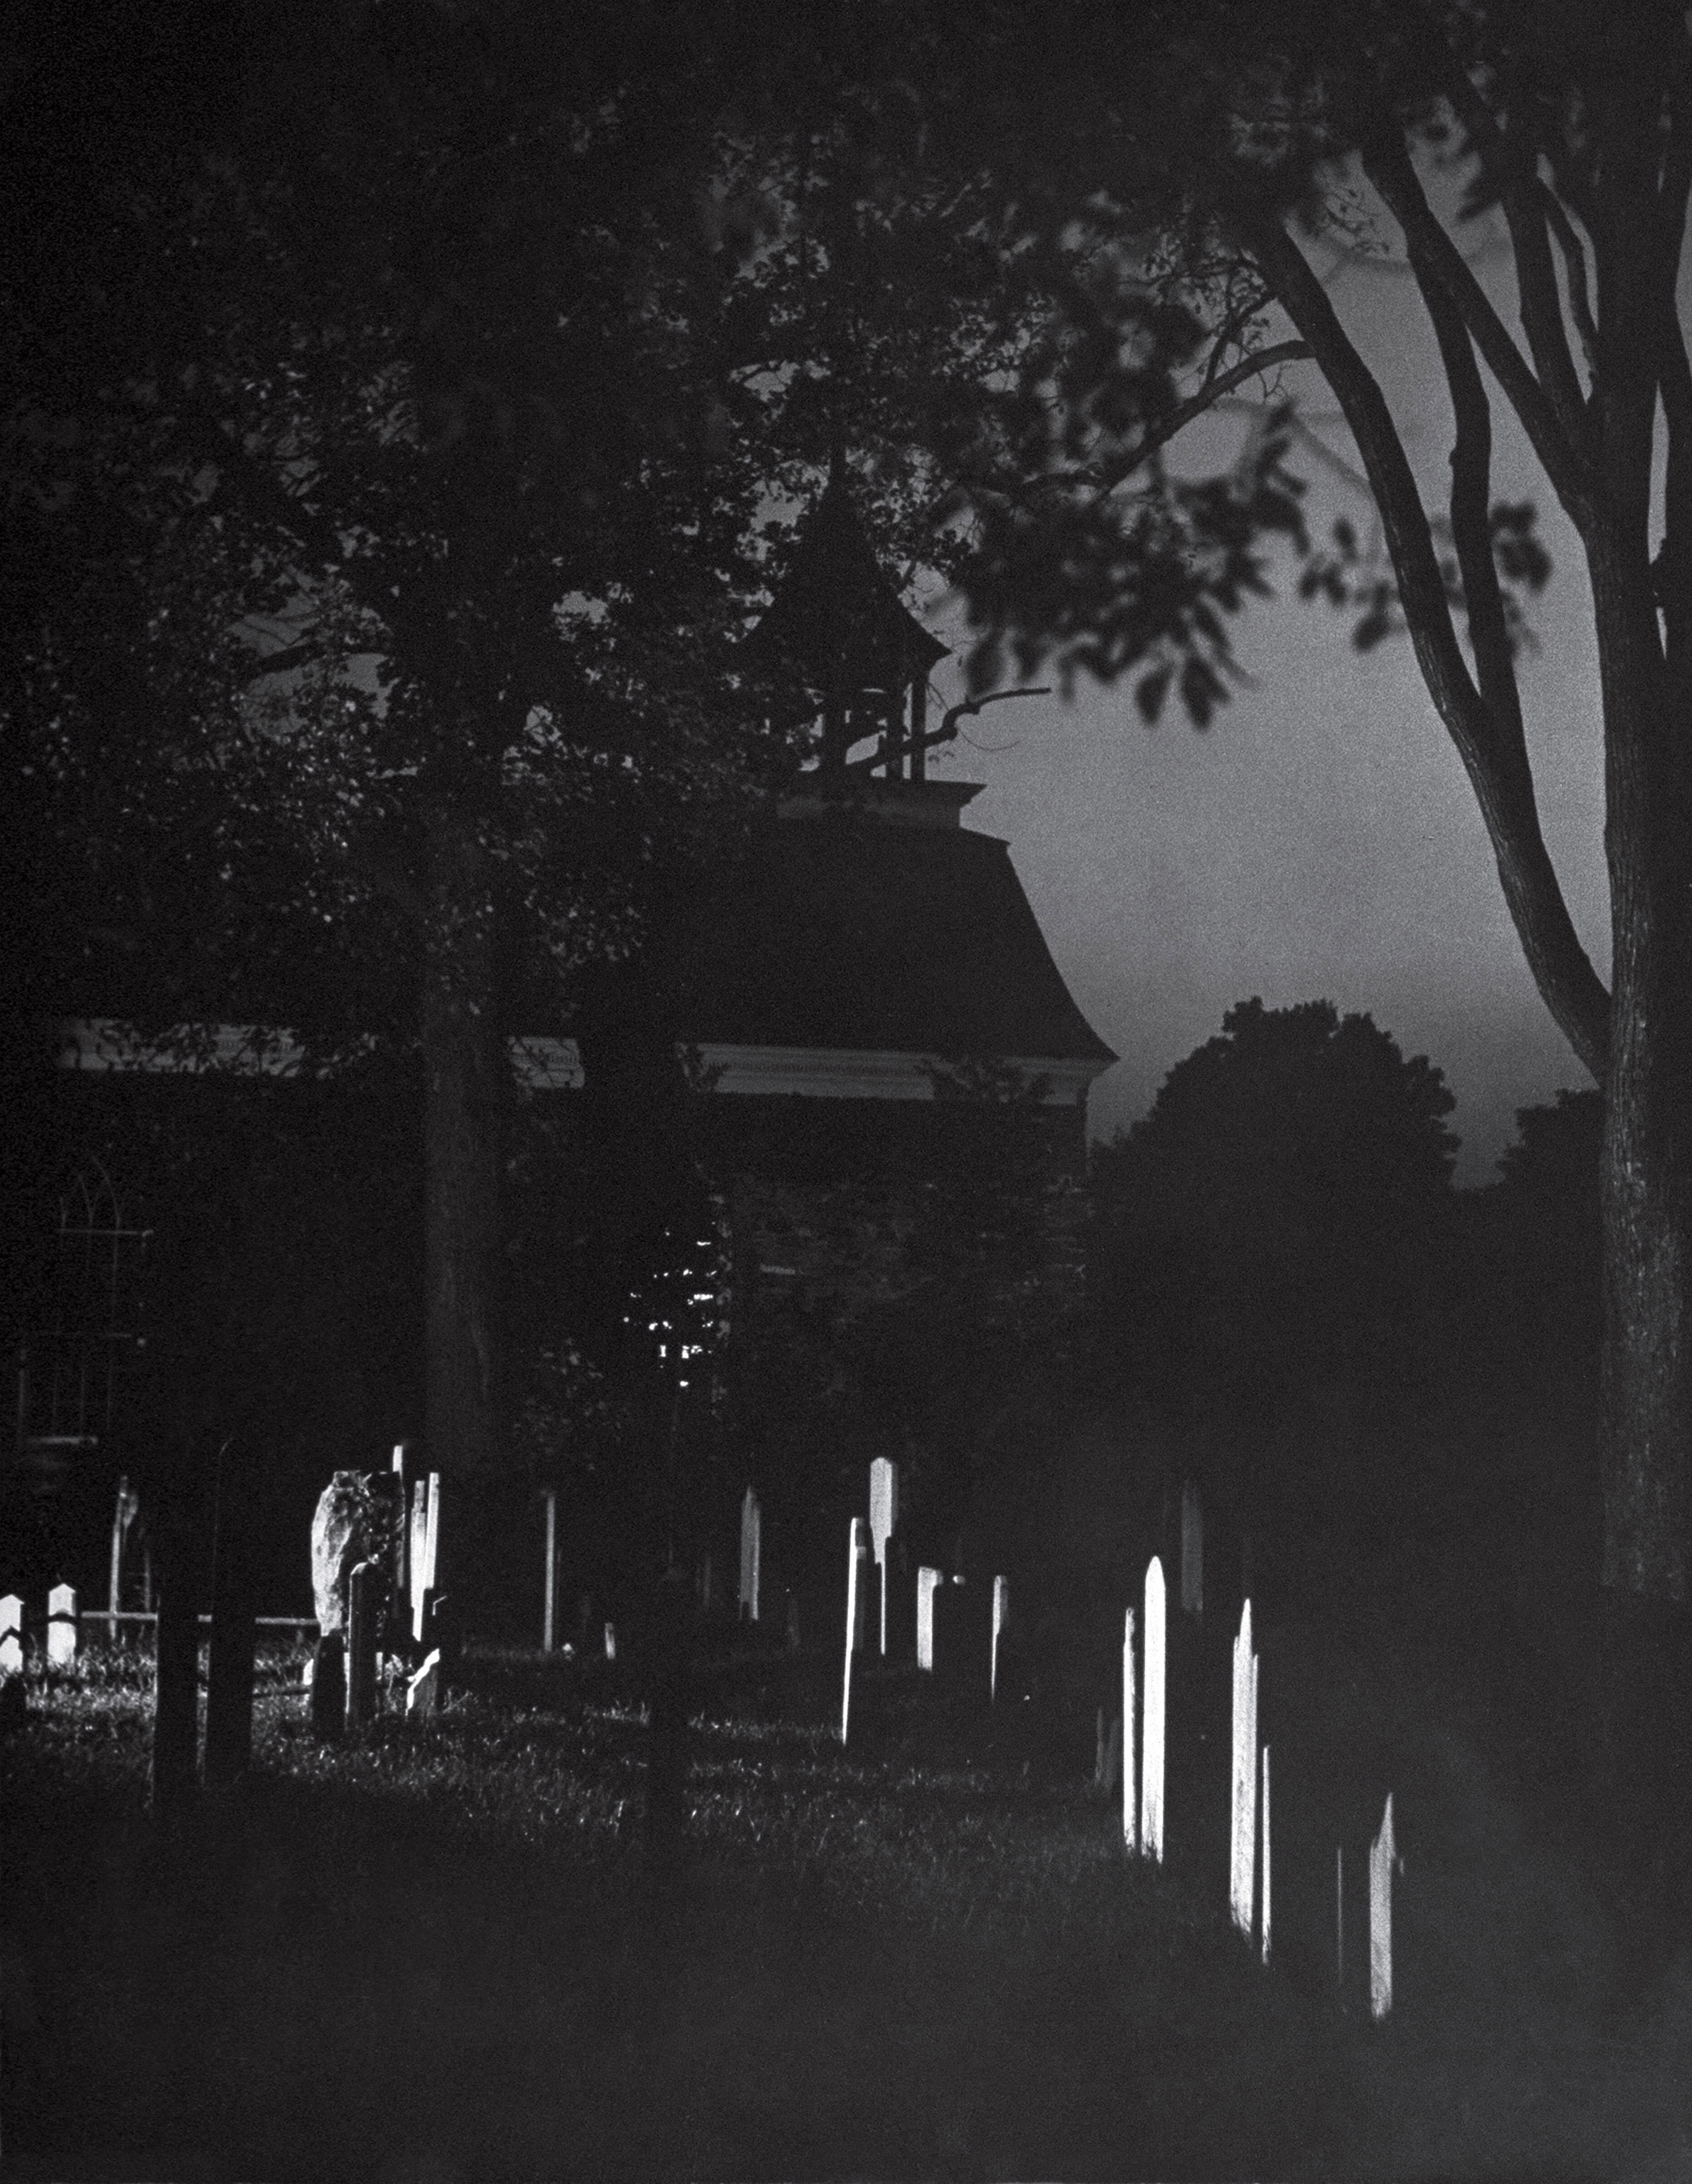 Night in the Sleepy Hollow, N.Y., cemetery where author Washington Irving is buried.